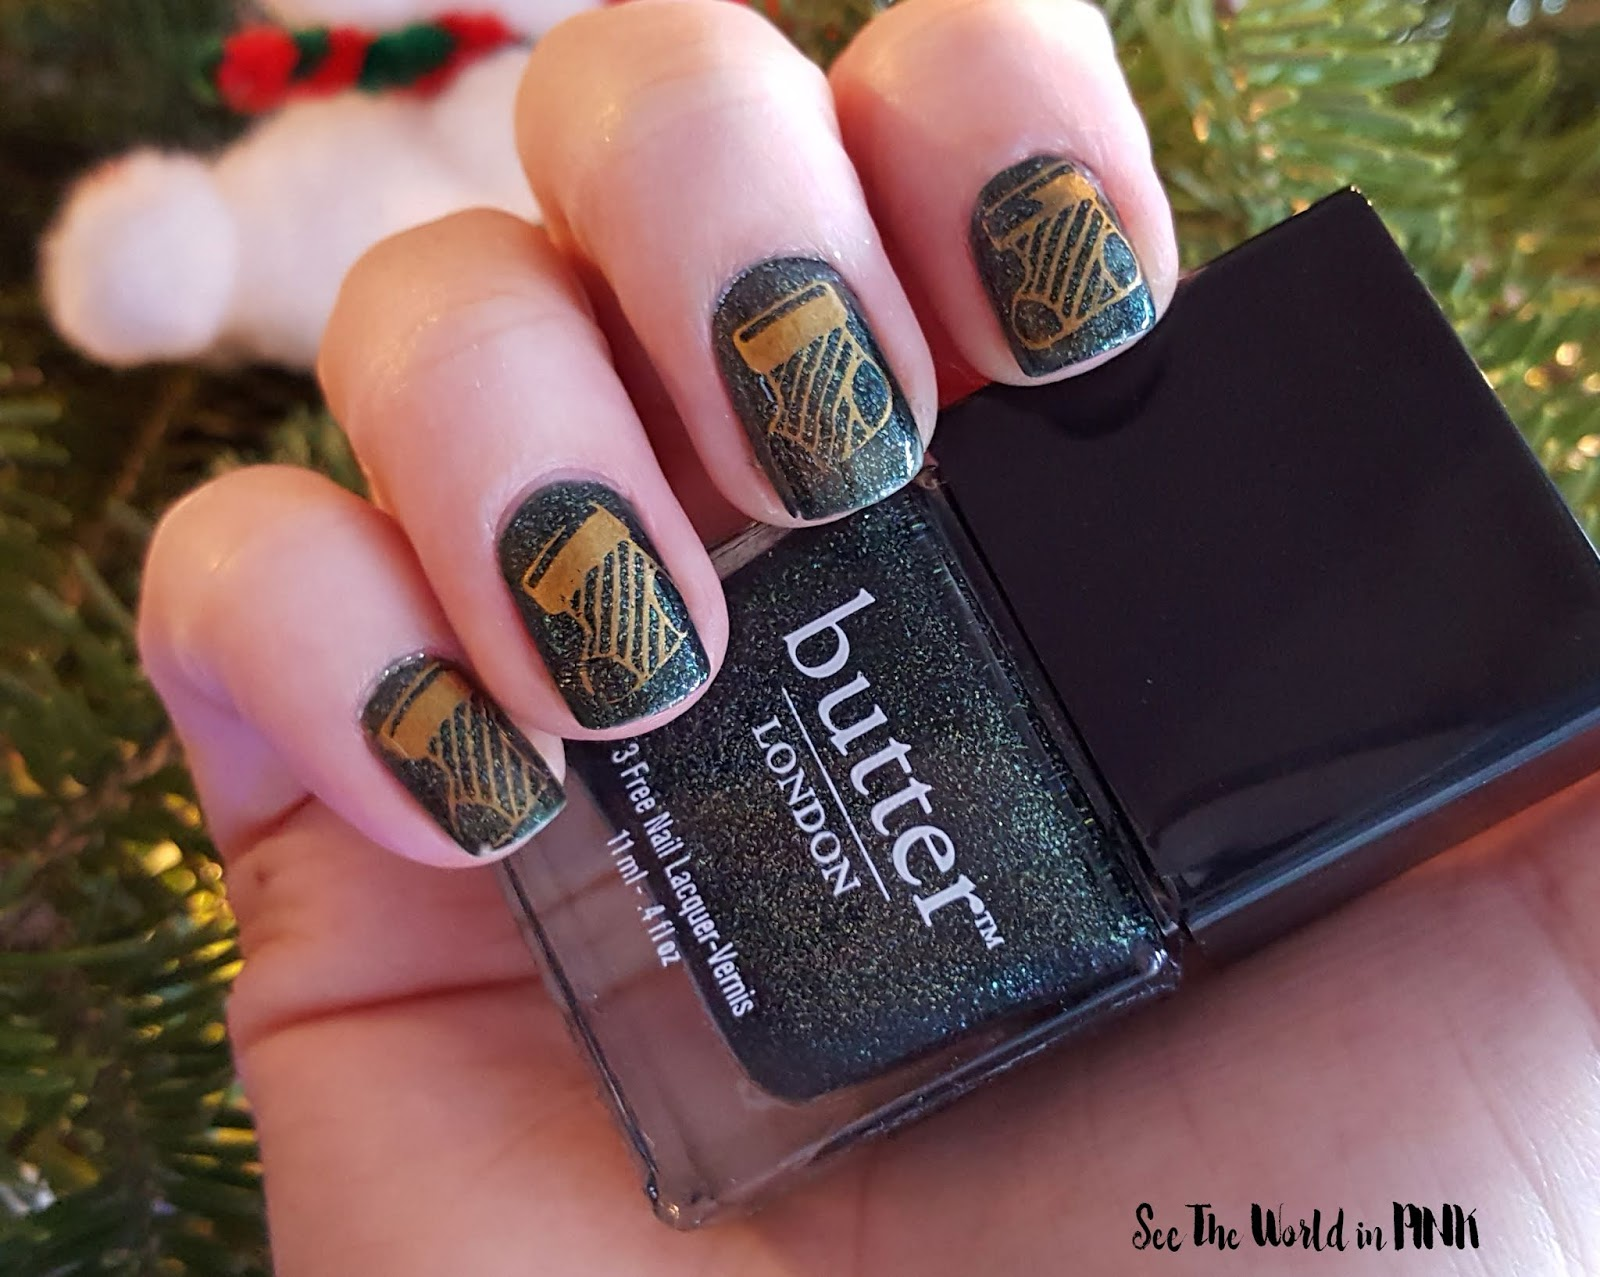 Manicure Monday - Glittery Green and Stamped Stockings